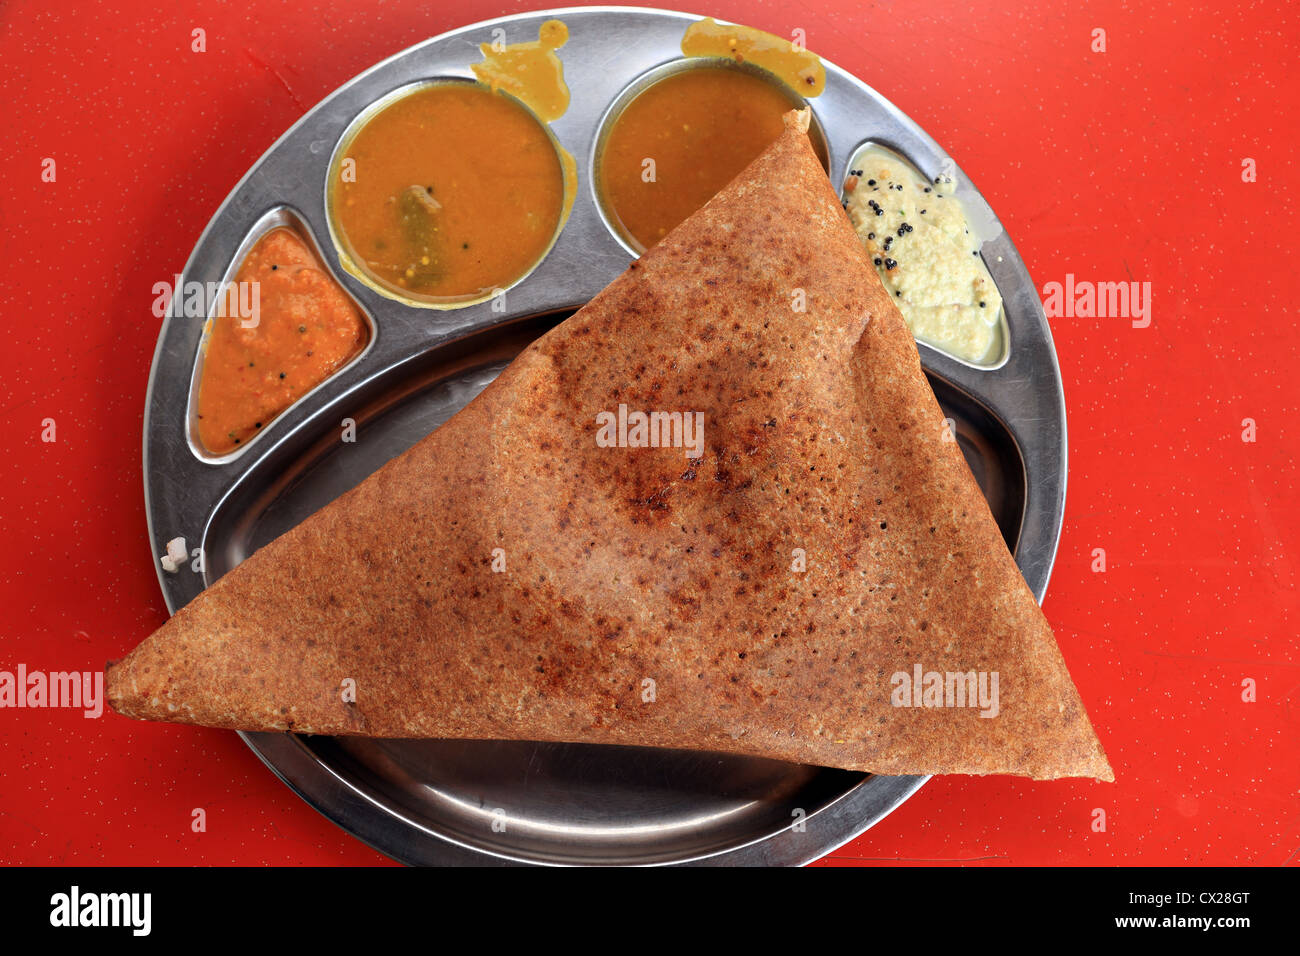 Carni di montone thosai dosa triangolo pasto in Little India di Singapore. Immagini Stock